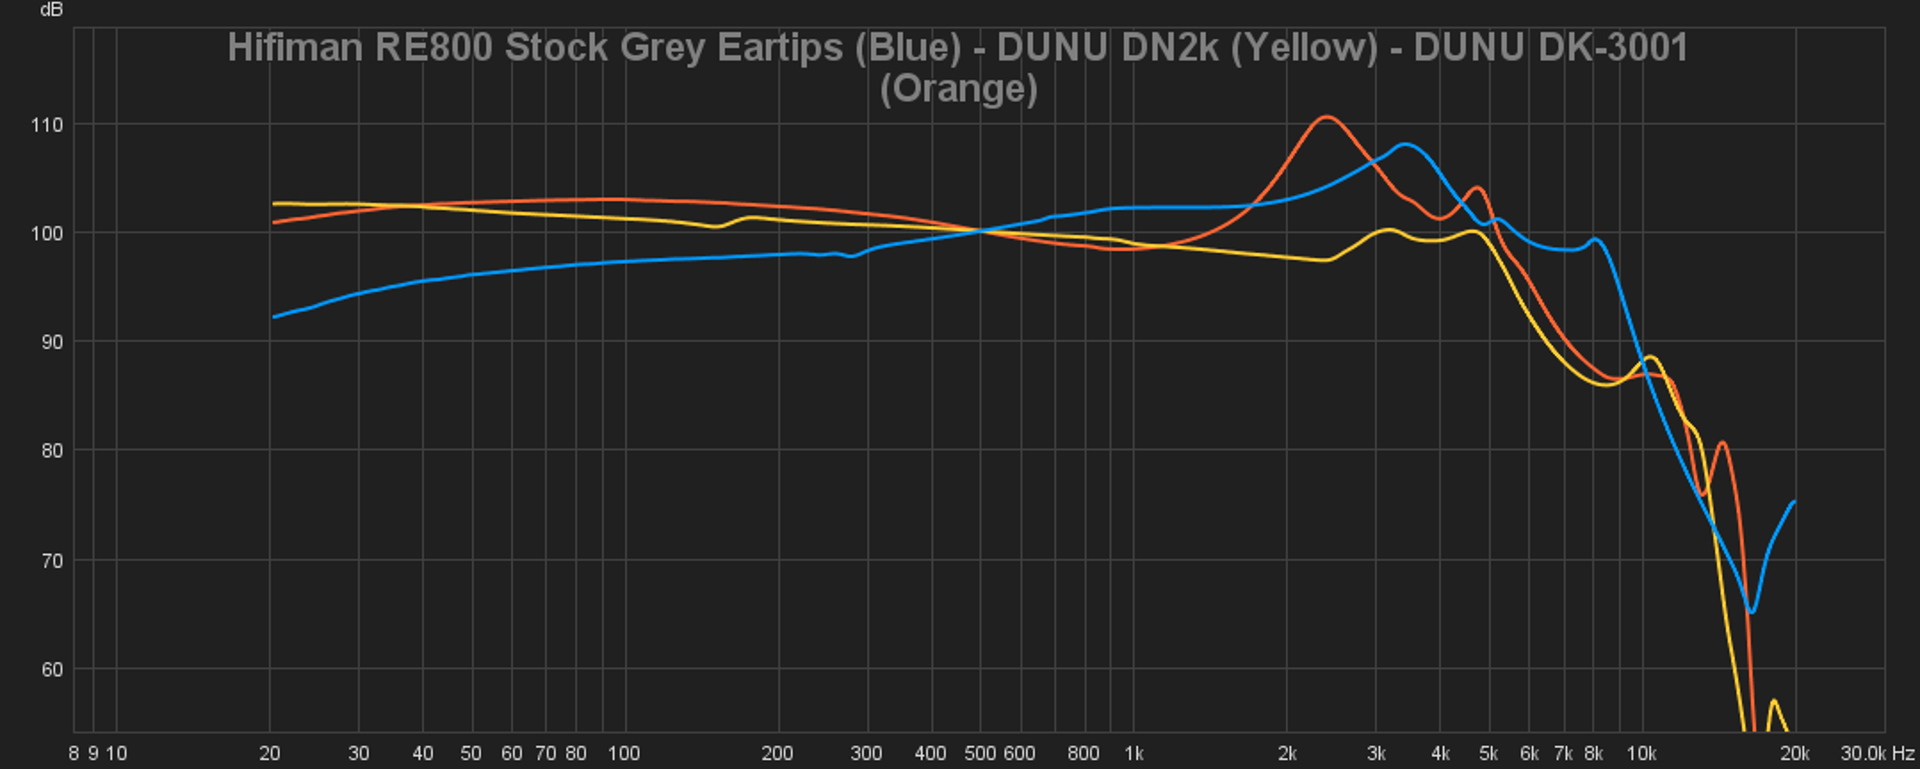 12 Hifiman RE800 Stock Grey Eartips (Blue) - DUNU DN2k (Yellow) - DUNU DK-3001 (Orange).png